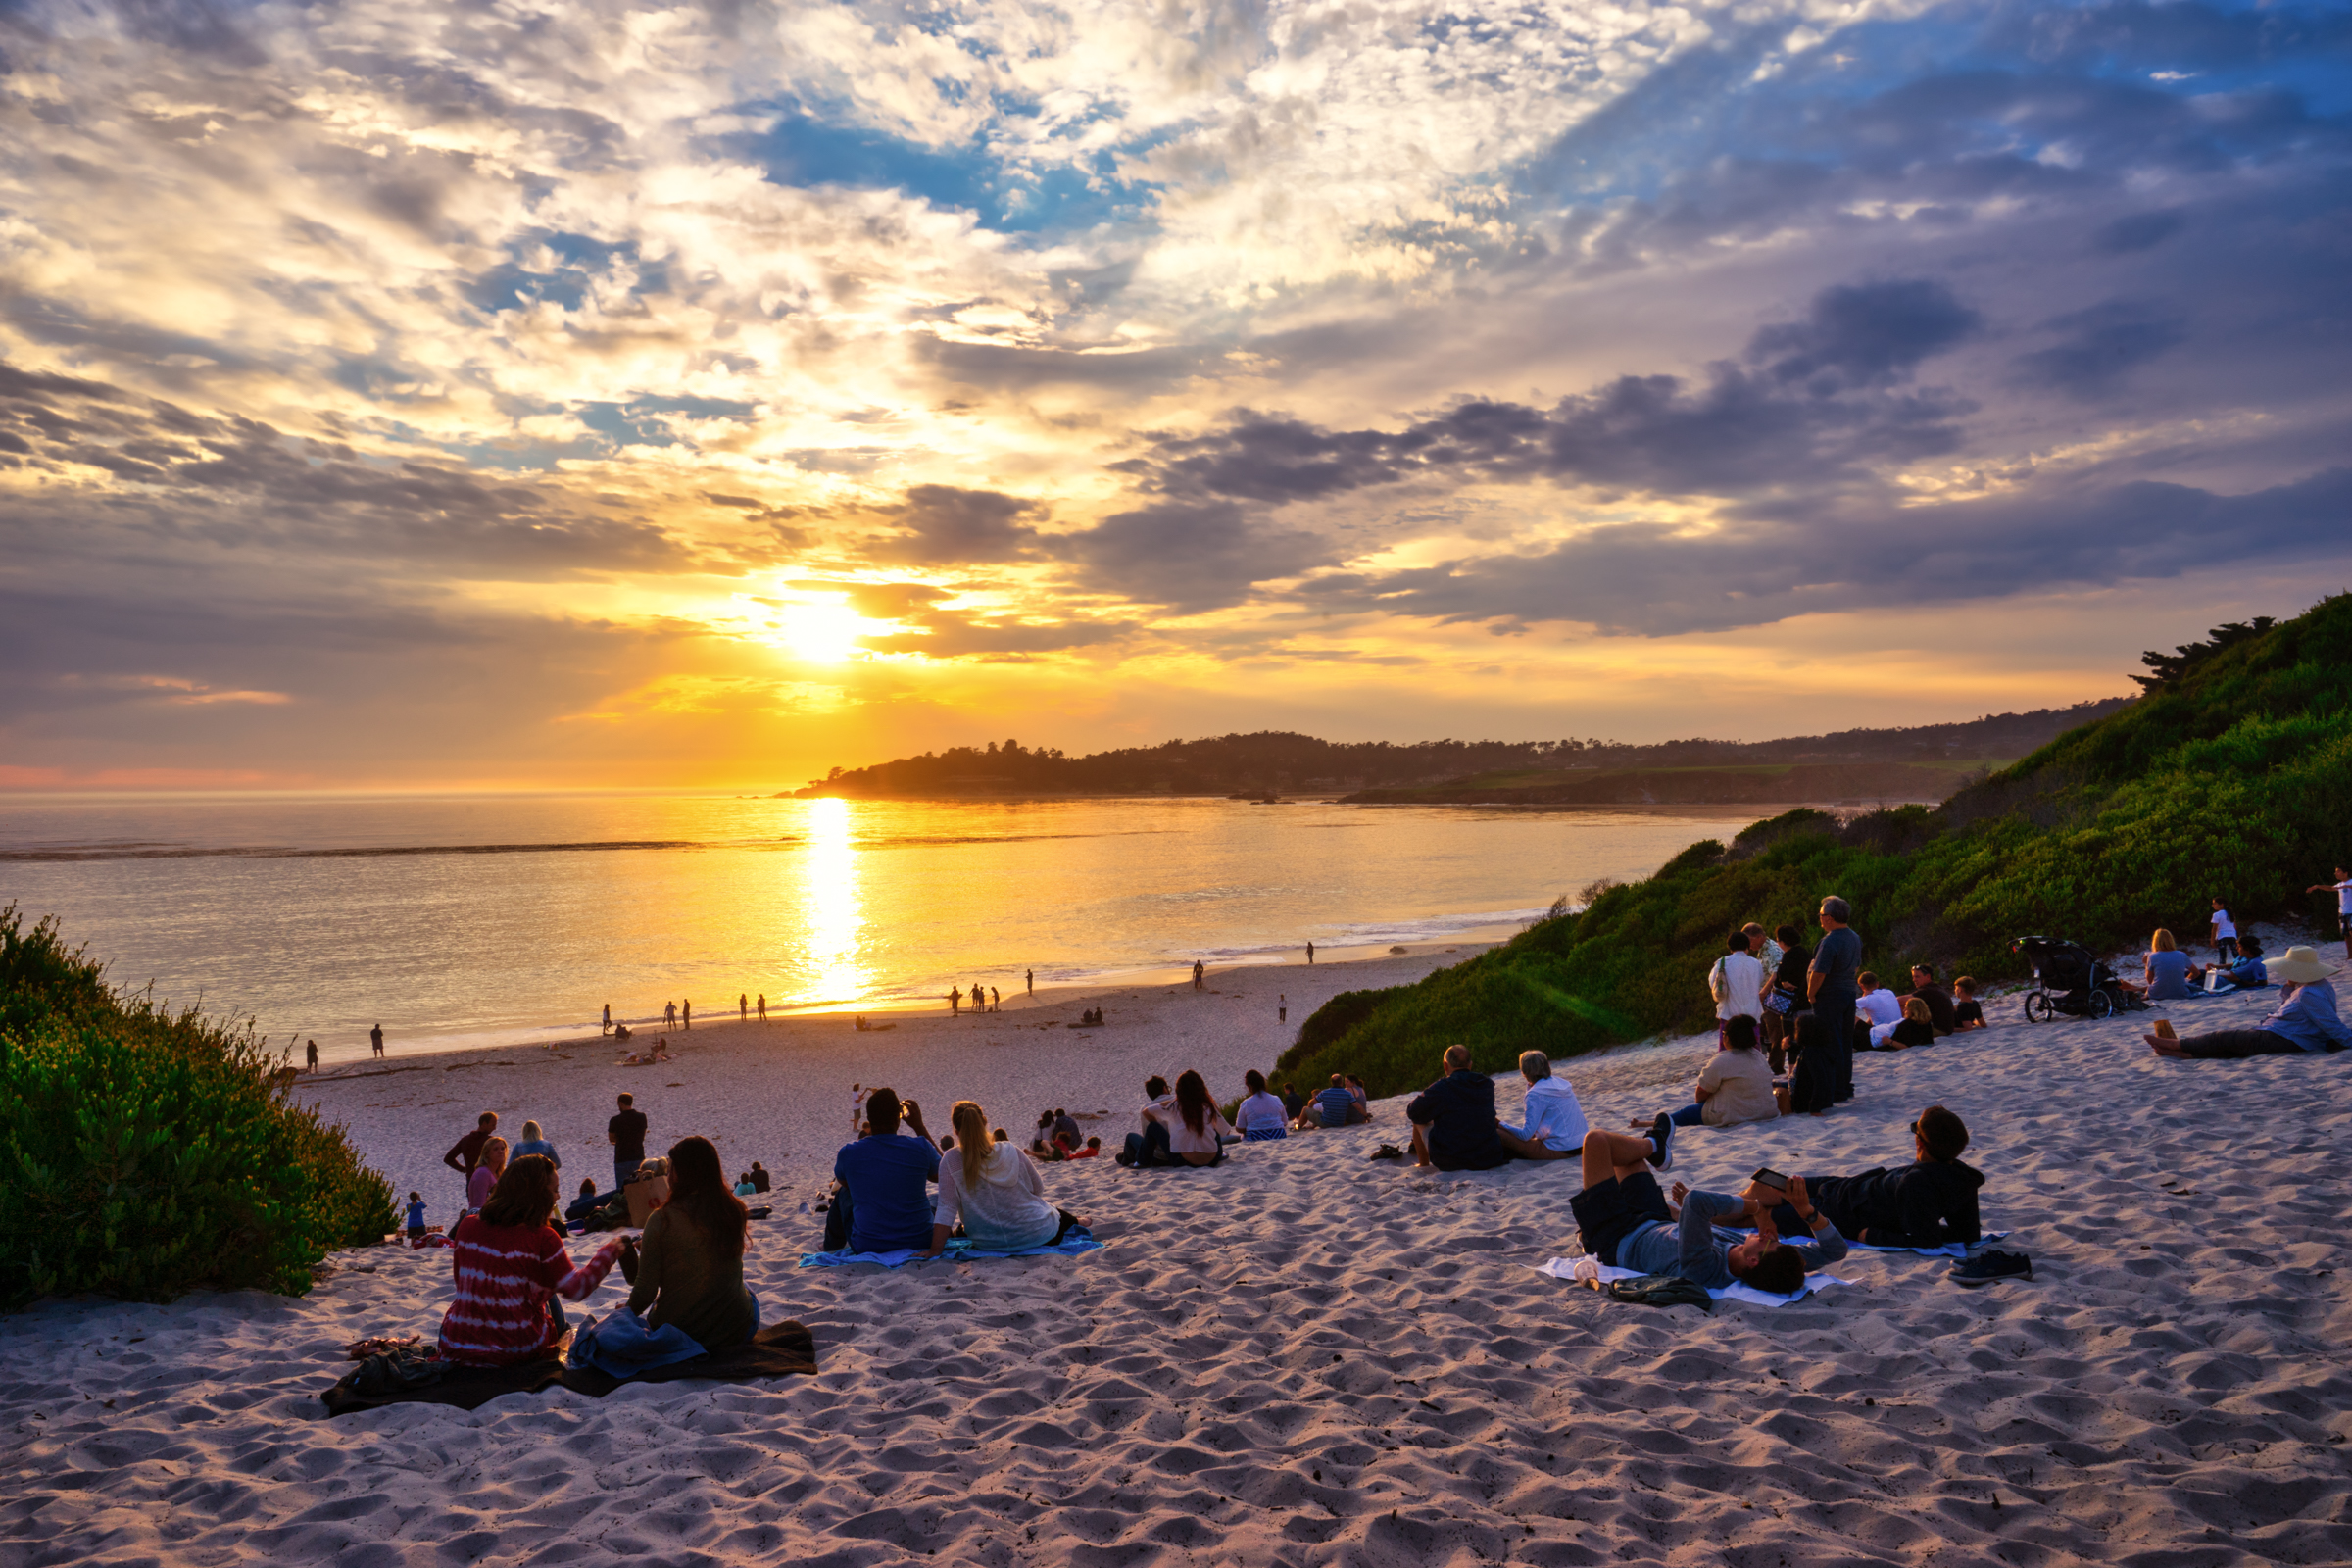 CA-Carmel-sunset-beachgoers.jpg